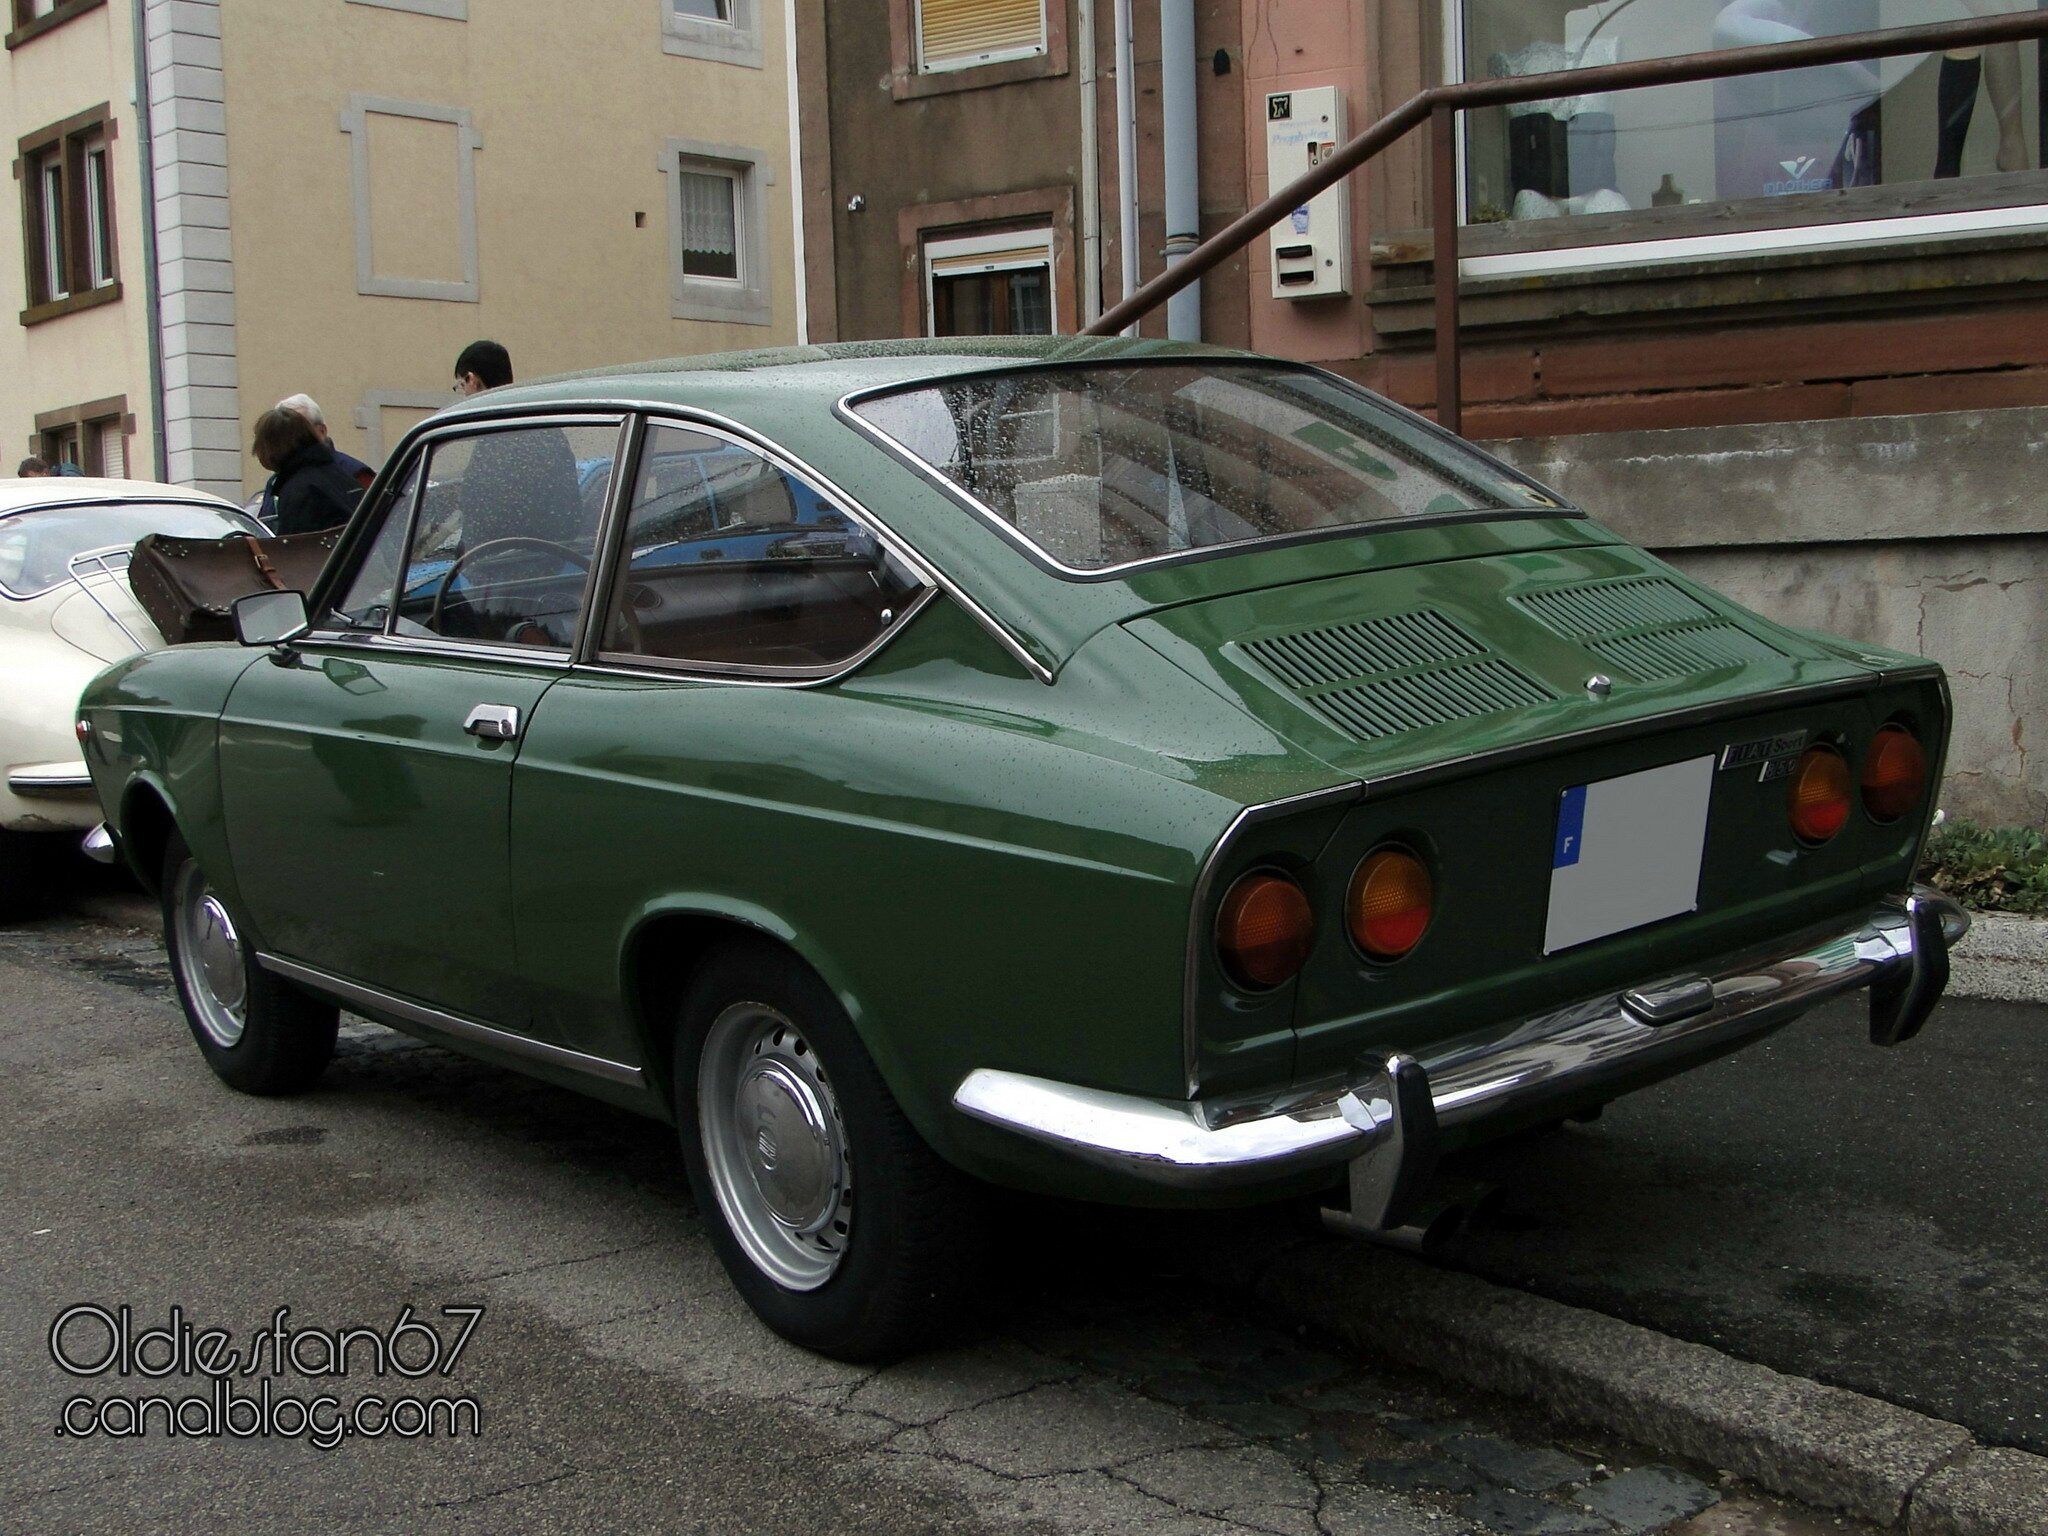 fiat 850 sport coupe 1968 1971 oldiesfan67 mon blog auto. Black Bedroom Furniture Sets. Home Design Ideas